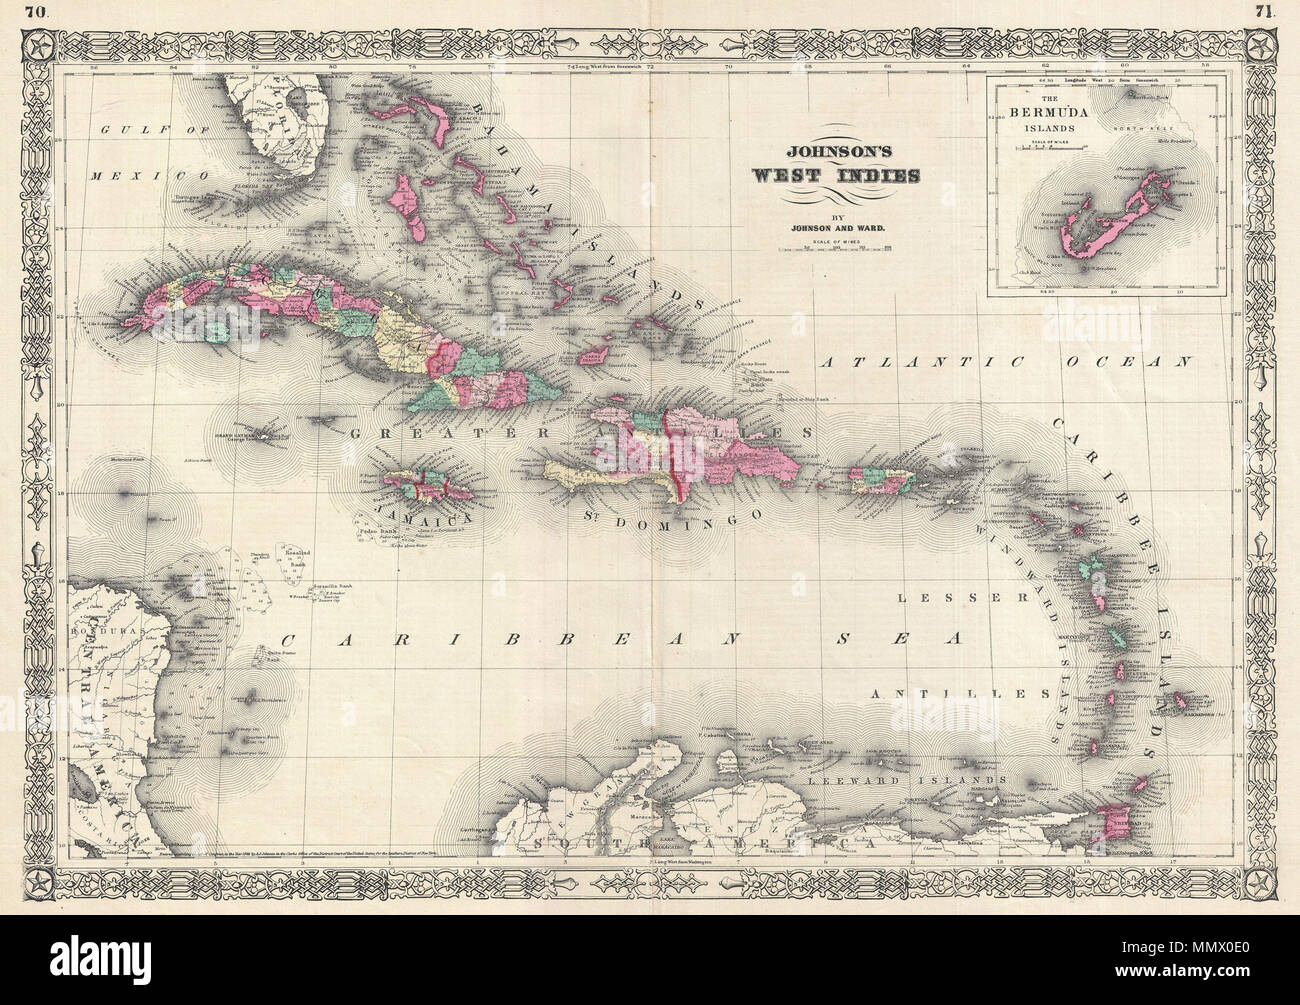 Map Of Islands Off Florida.English A Beautiful Example Of A J Johnson S 1866 Map Of The West